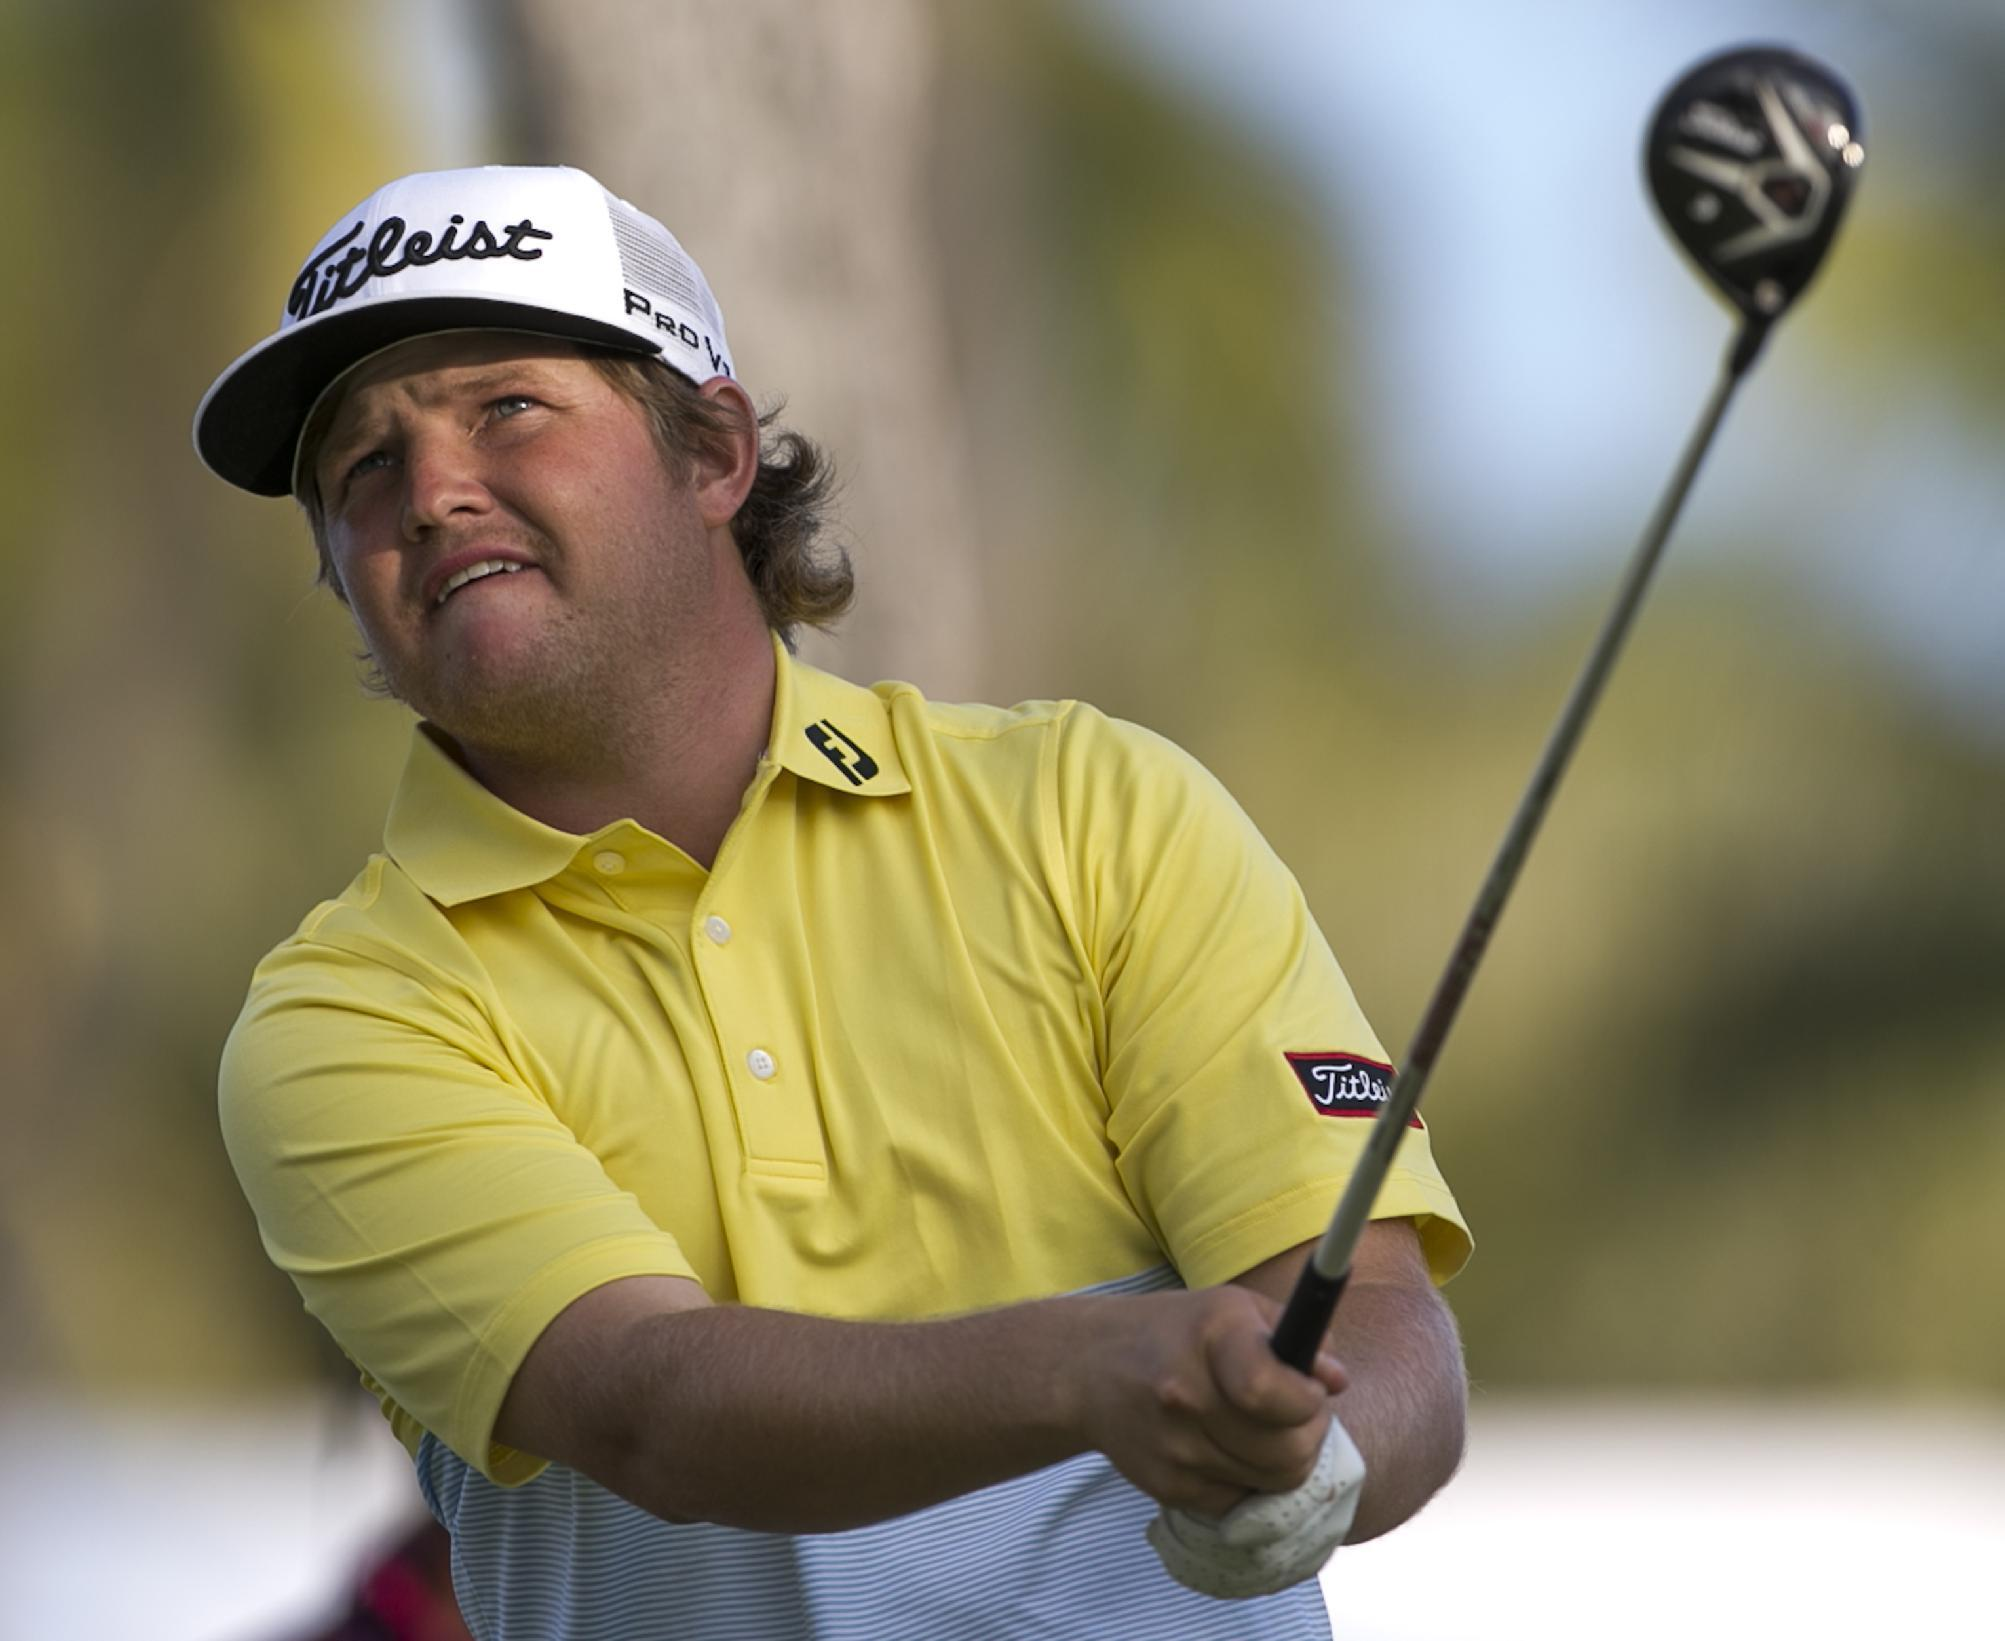 PGA player DQ'd after hitting himself in head with putter